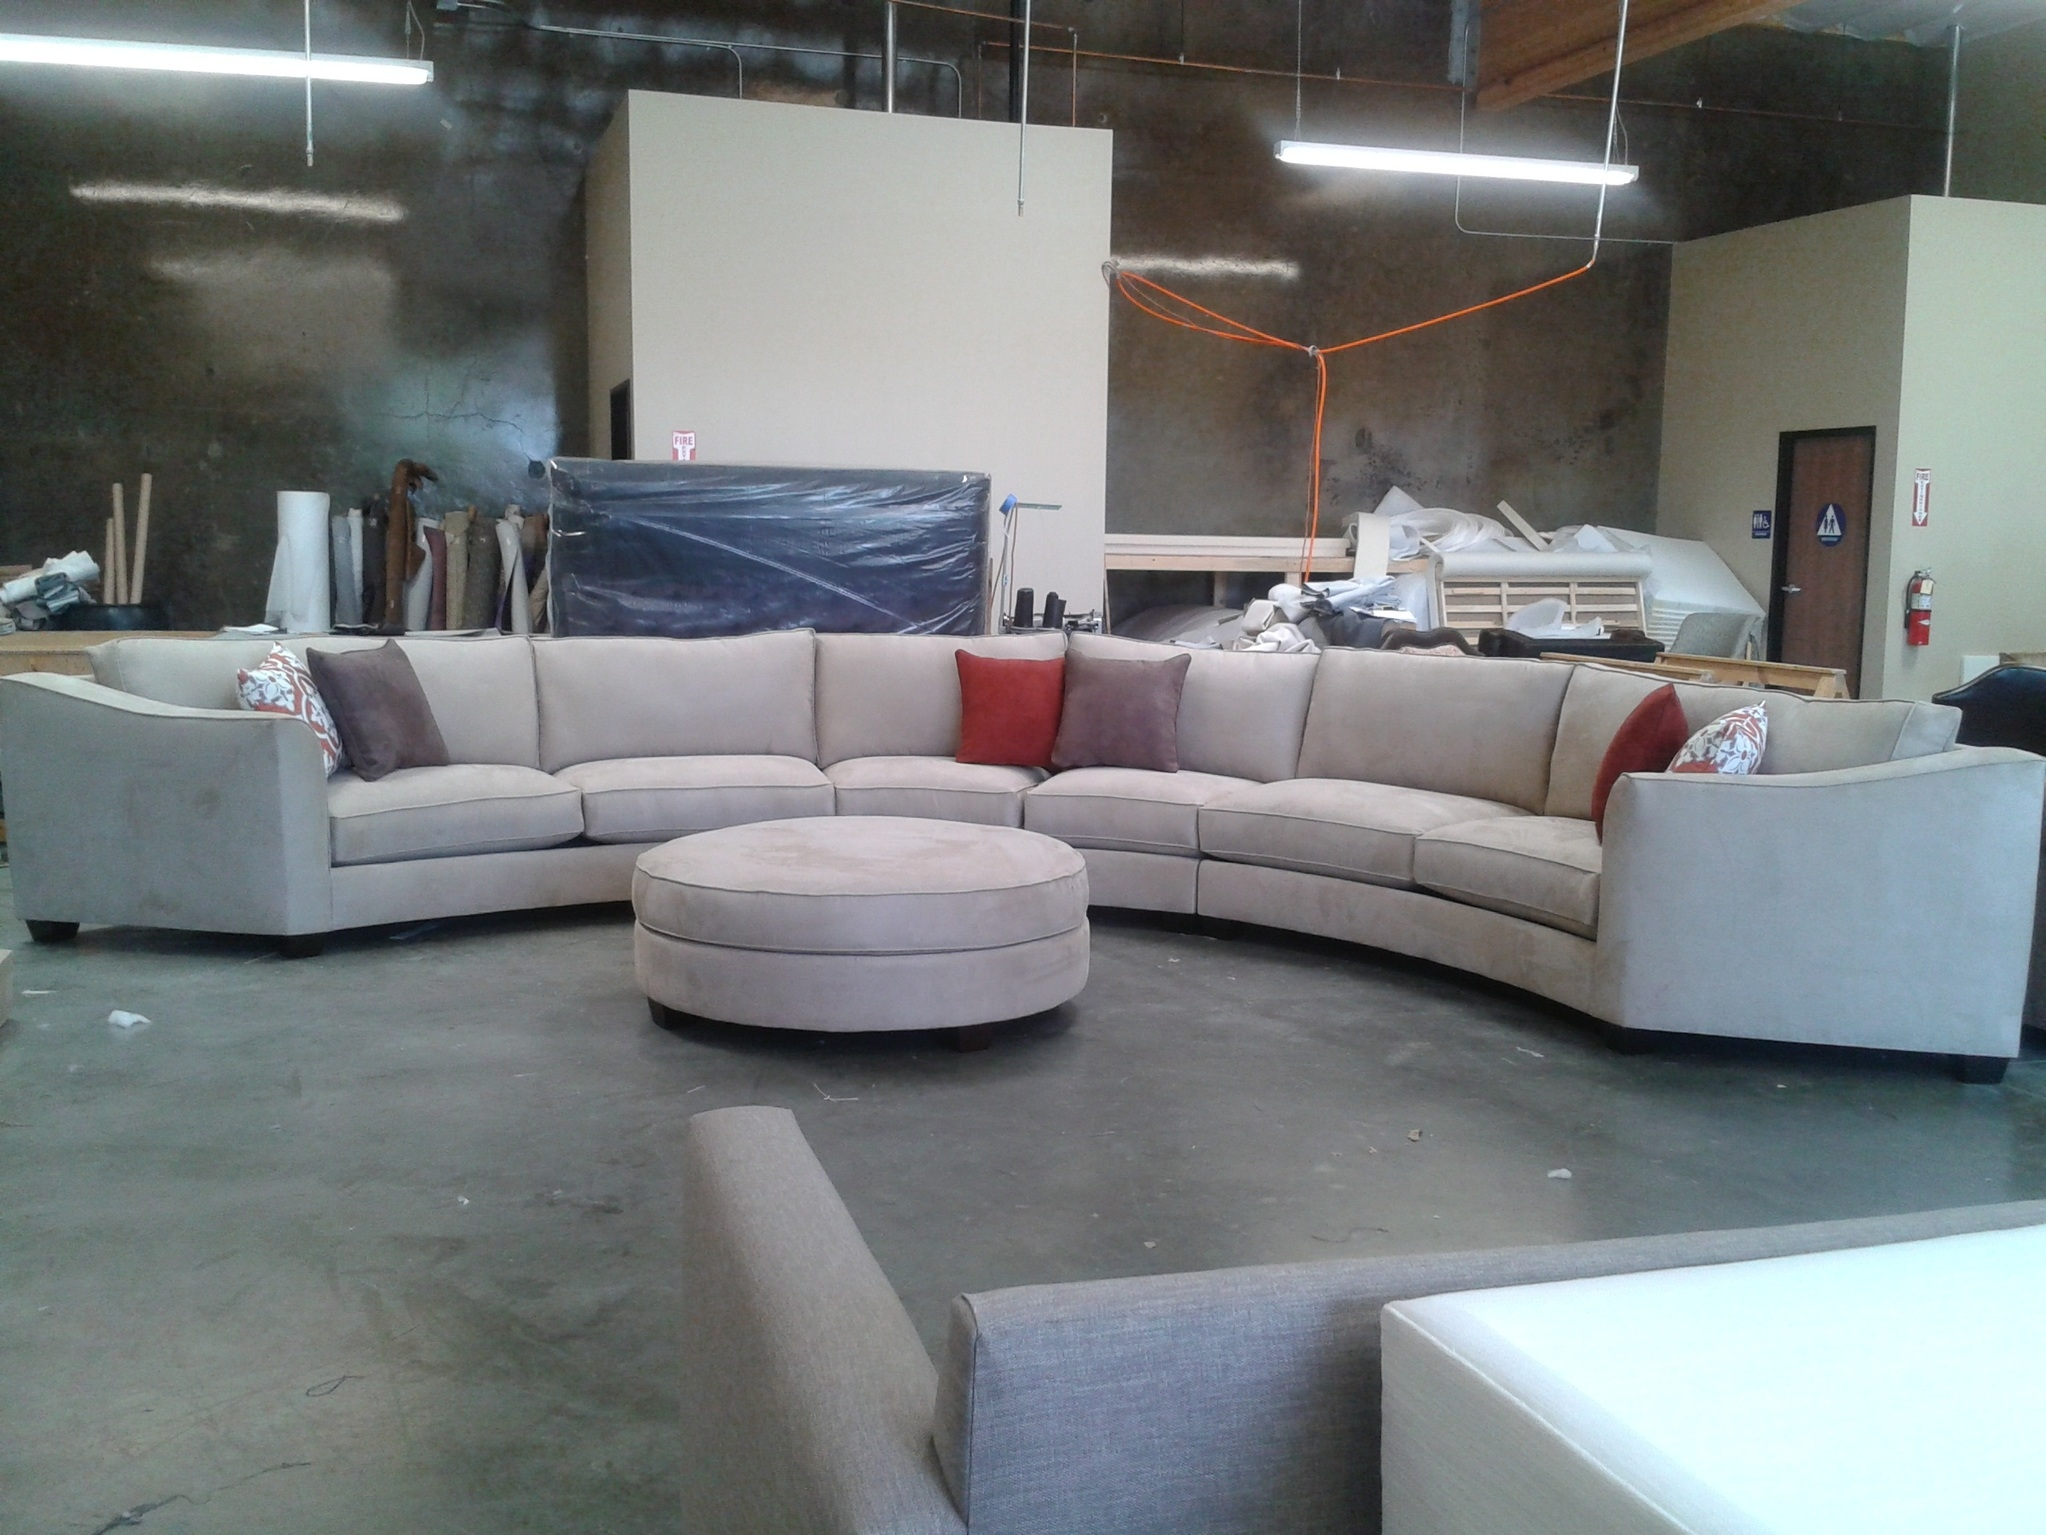 Interesting Circular Sectional Sofas 55 For Your Soft Leather Throughout Circular Sectional Sofa (#5 of 12)